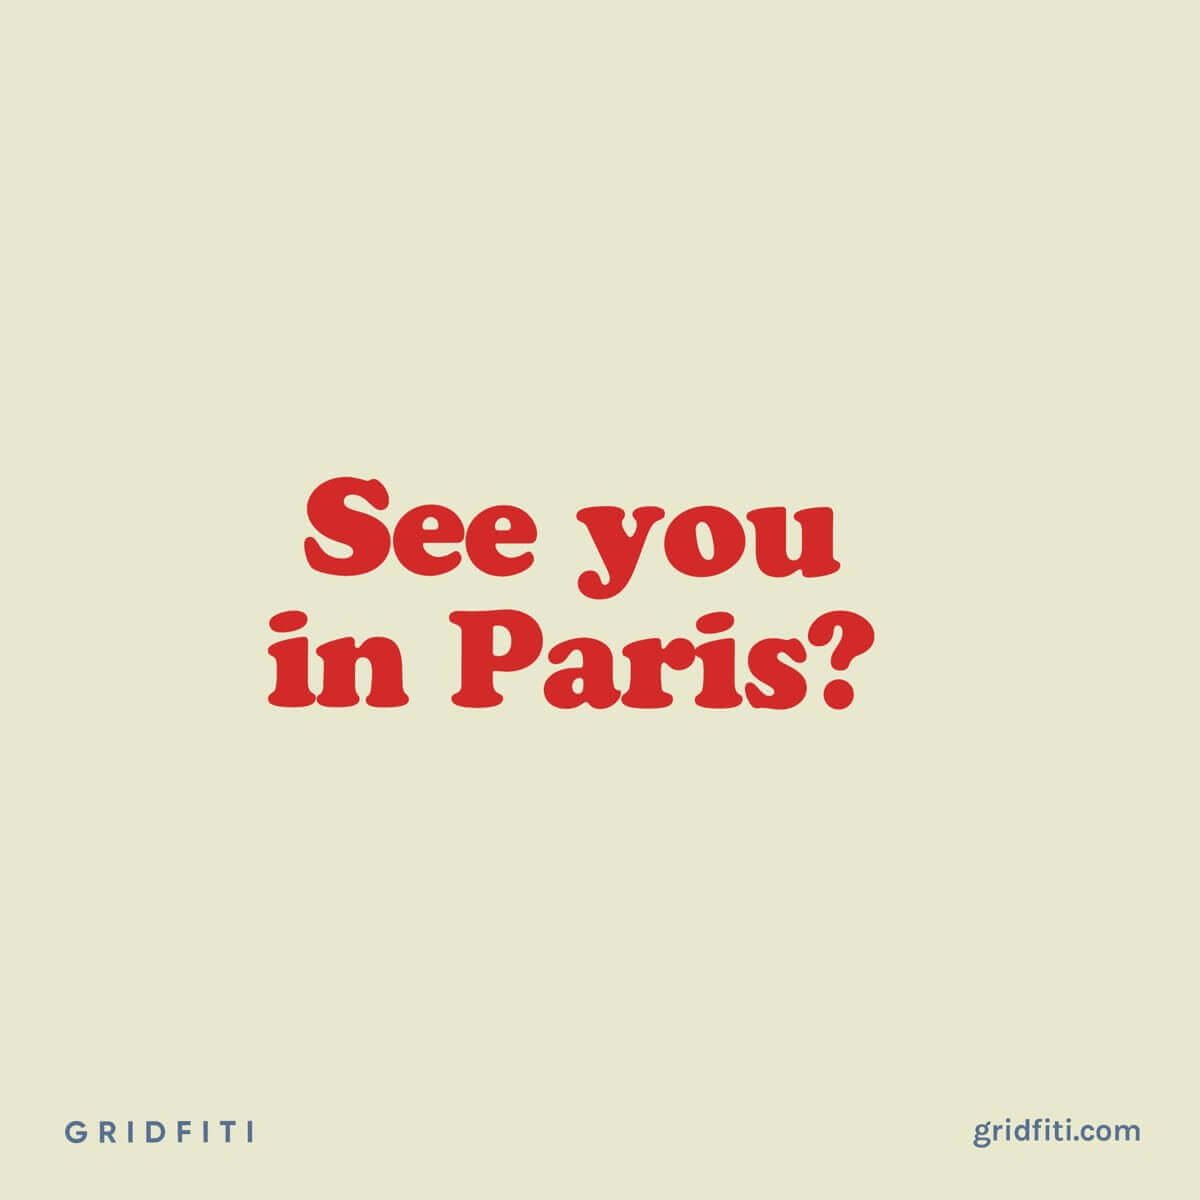 I'll see you in paris quotation